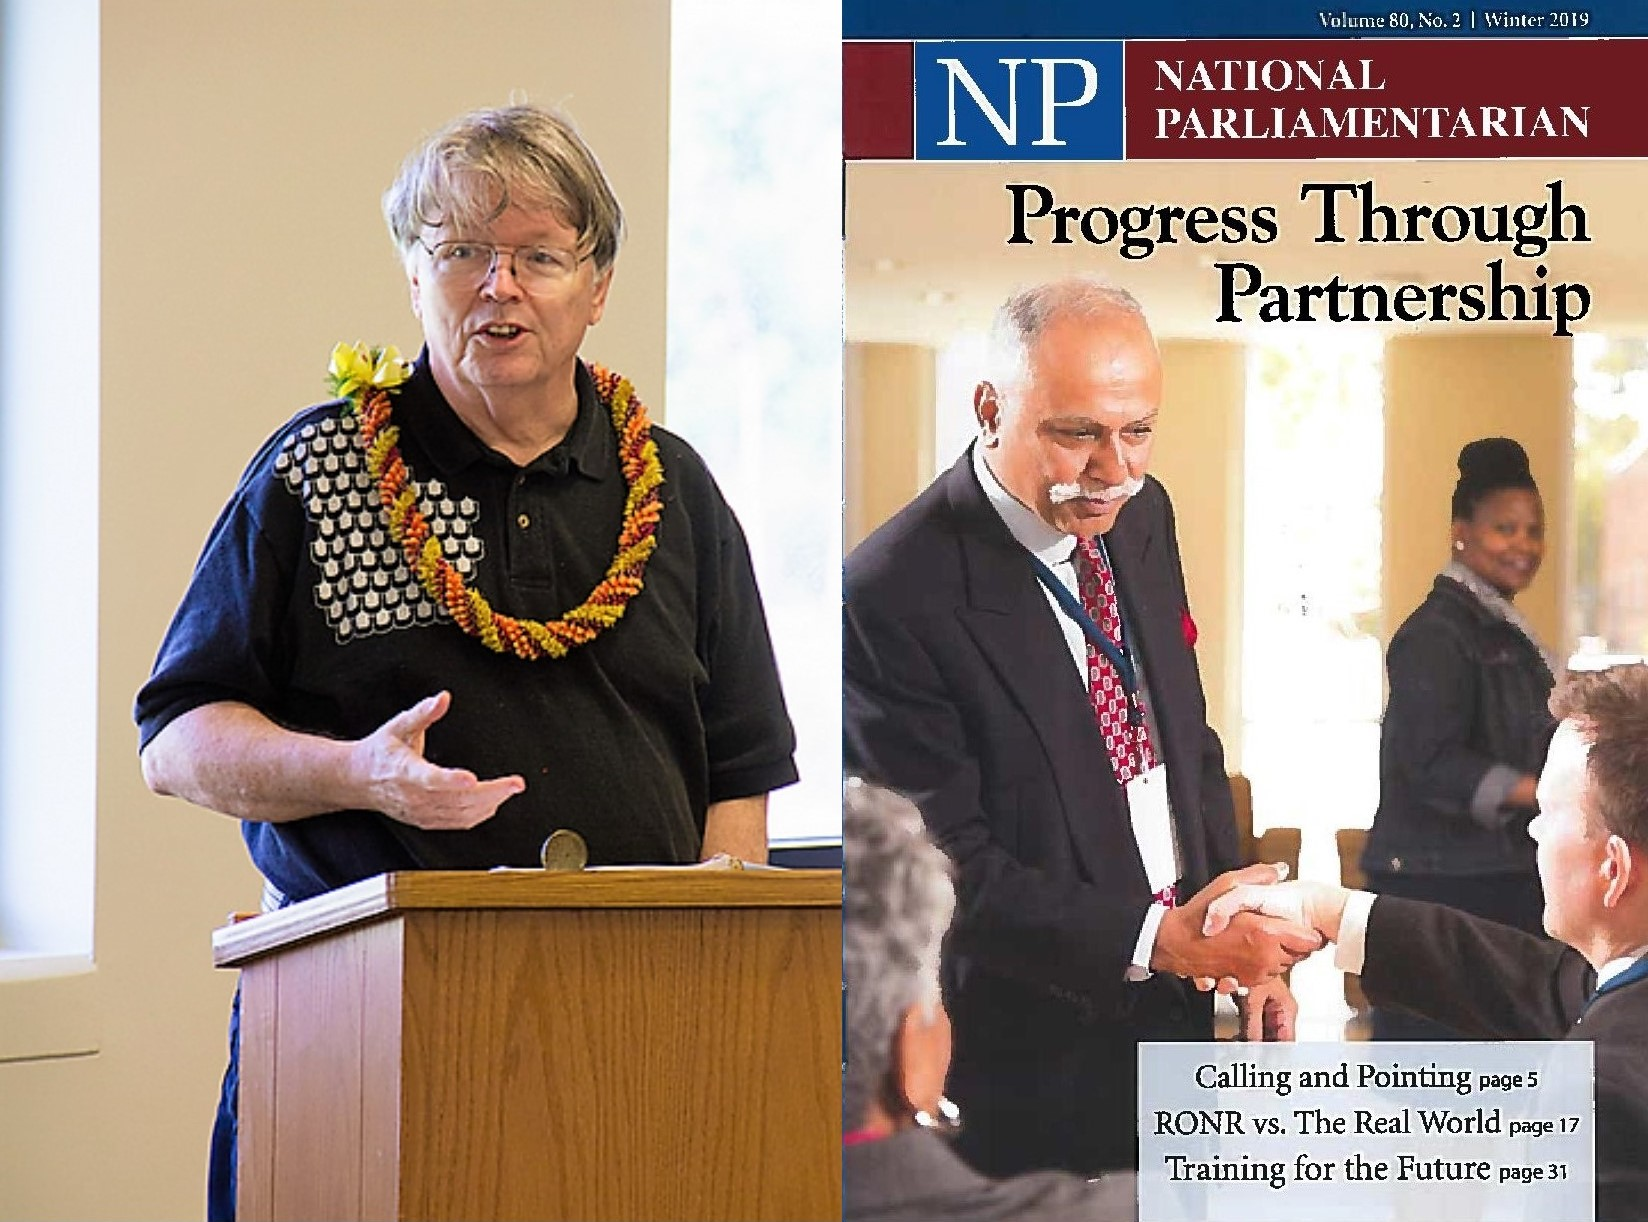 Photo montage. On the left is Dr. William Puette at a lecturn talking while wearing a lei. On the right is the cover of National Parliamentarian journal